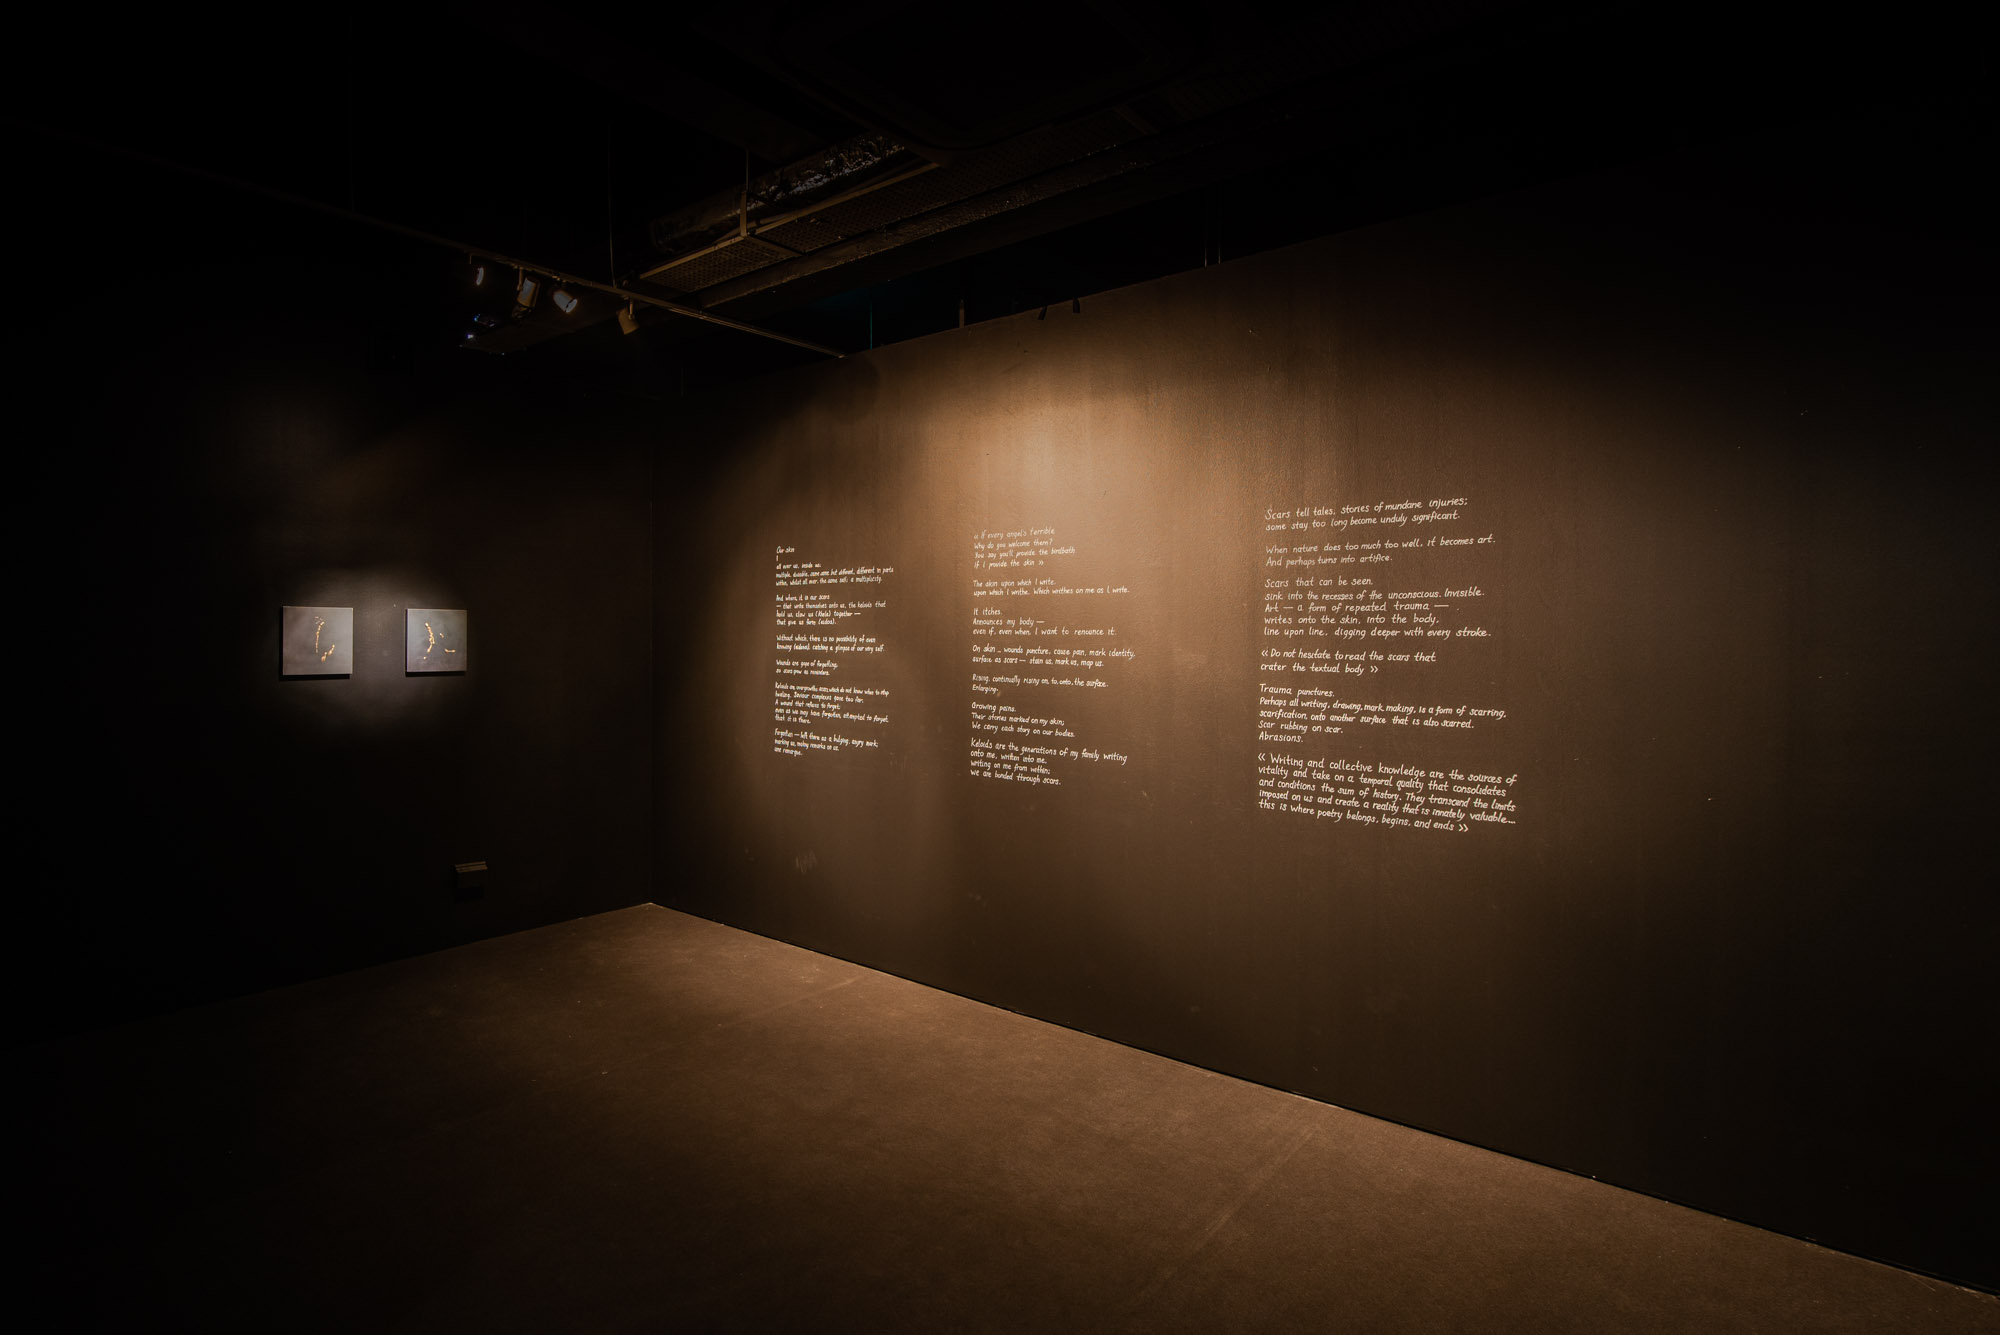 The scars that write us, Yanyun Chen 2018, Installation View at 8Q @ Singapore Art Museum